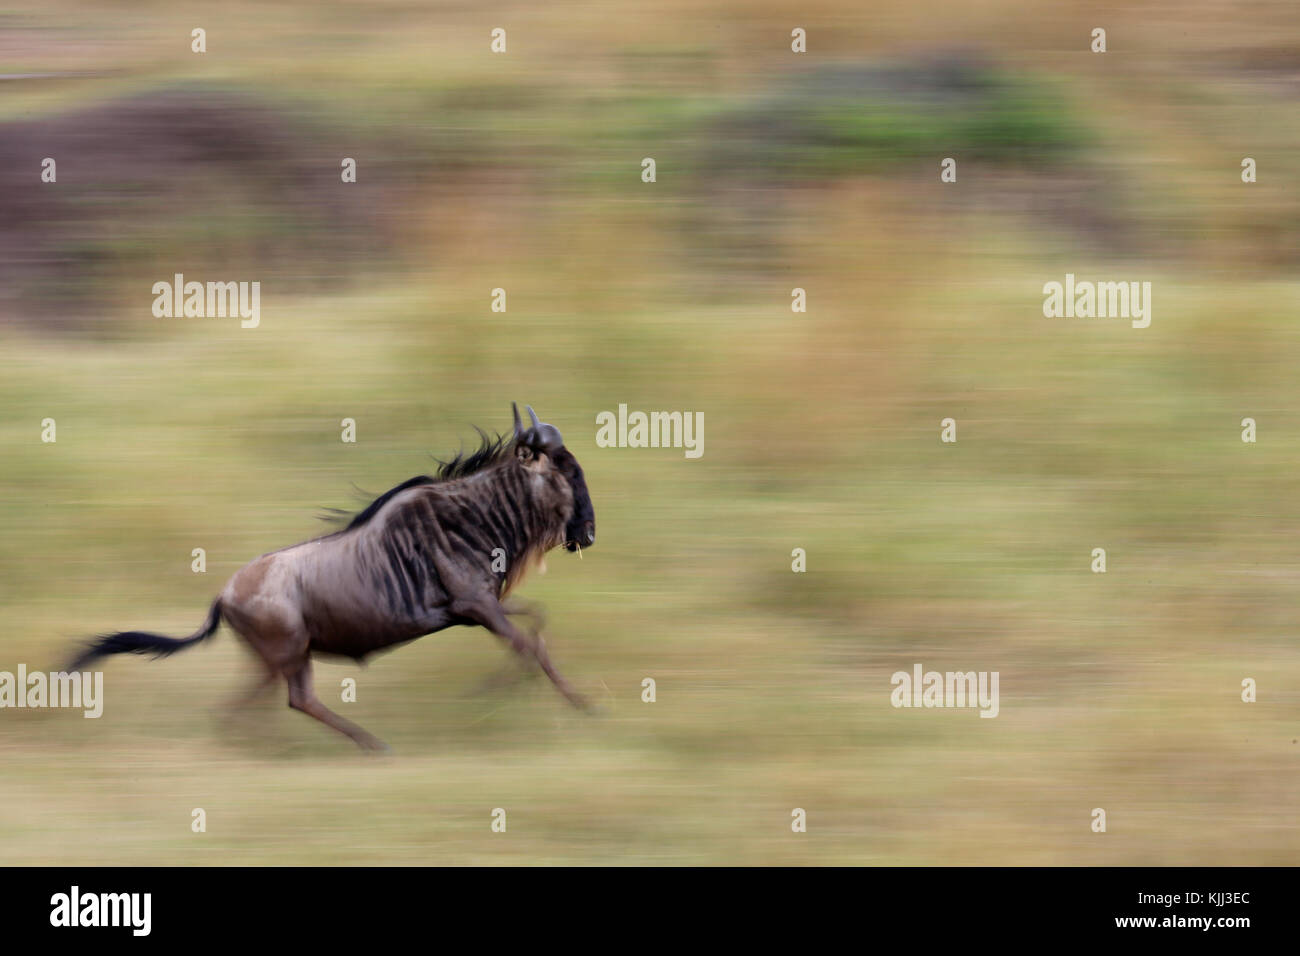 Motion blur of a running wildebeest  (Connochaetes taurinus) in tall grass. Masai Mara game reserve. Kenya. - Stock Image